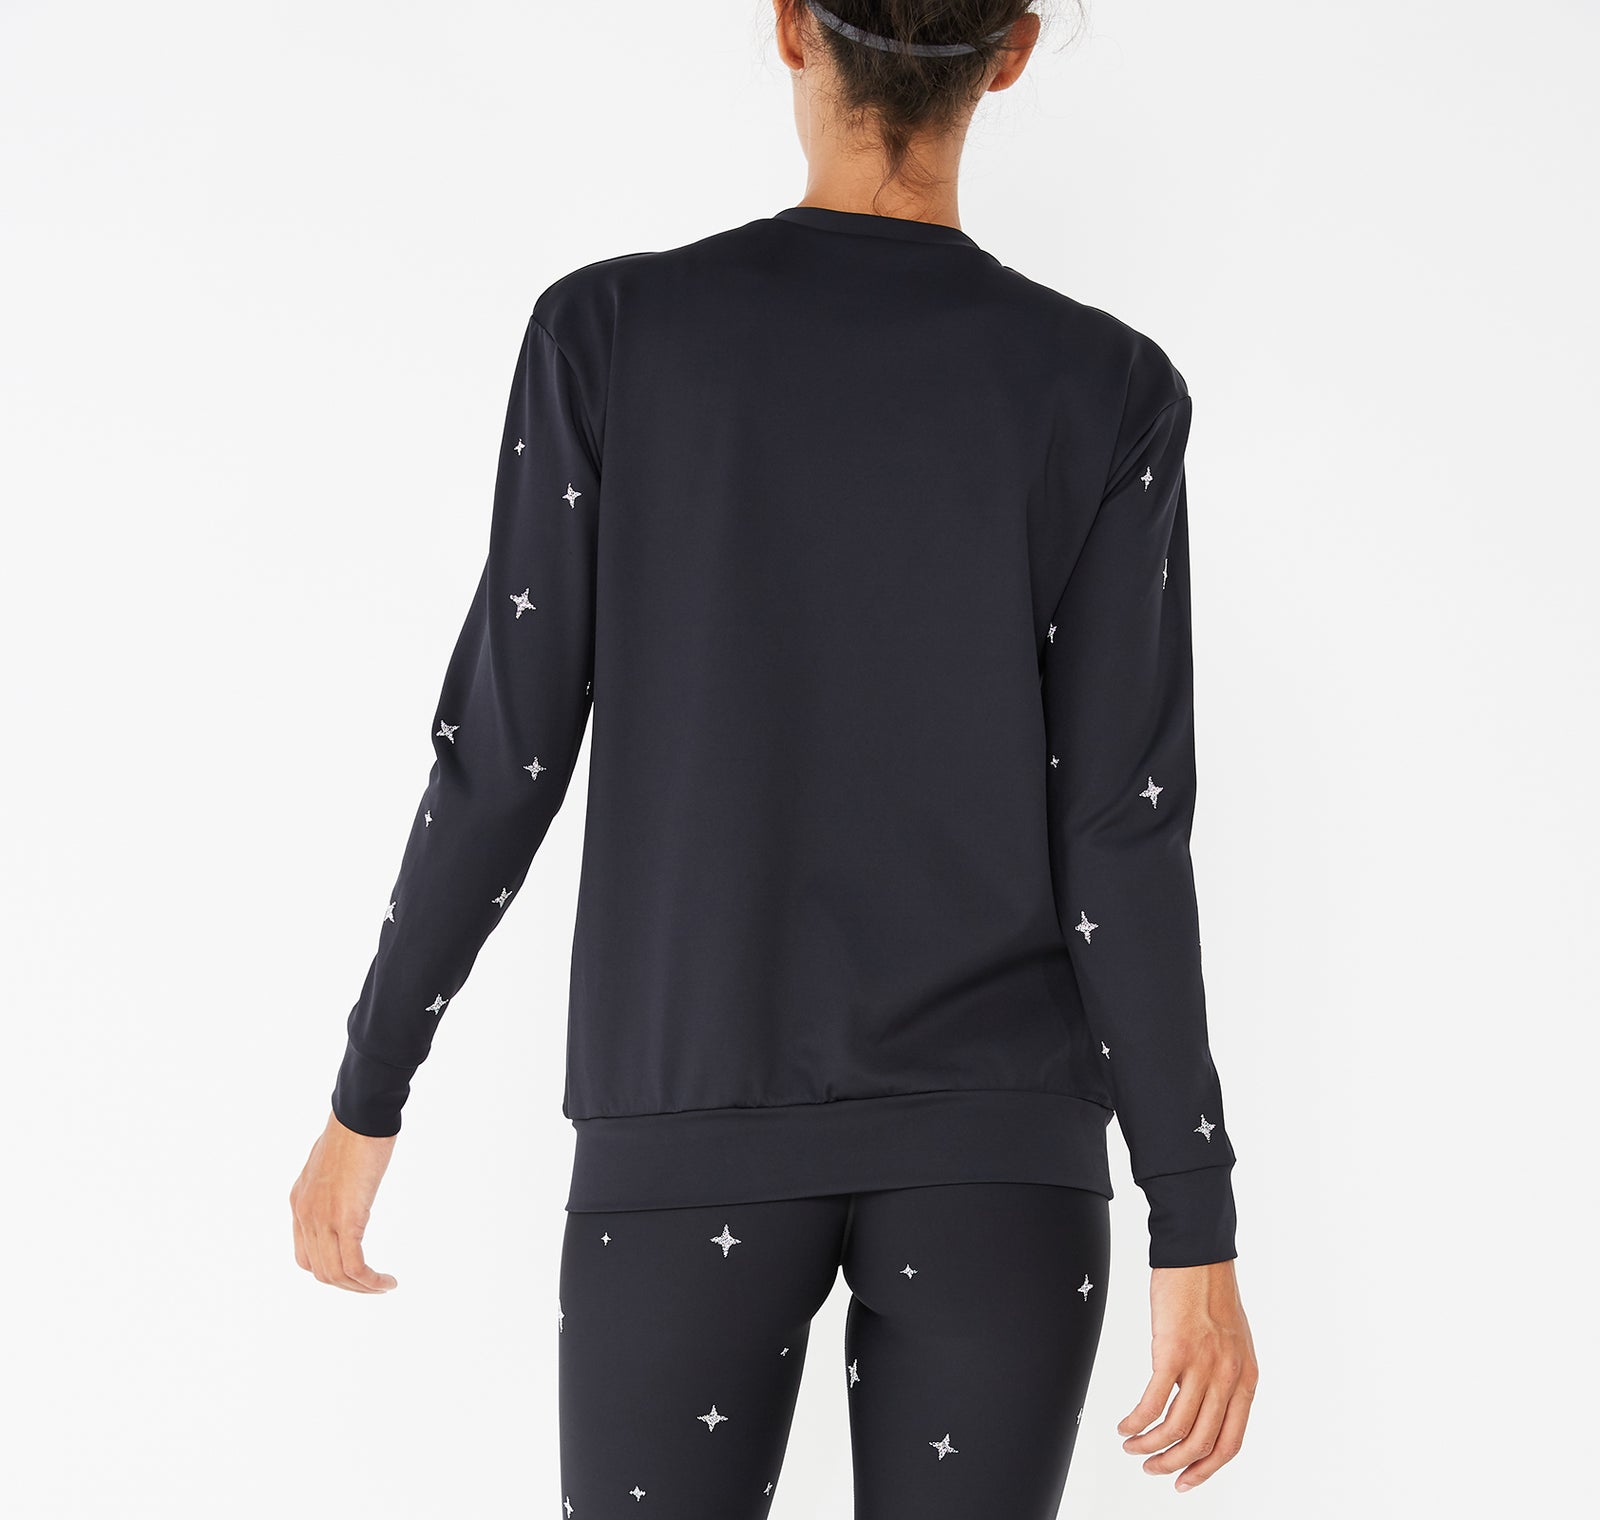 Surface Fit Starlight Sweatshirt with Swarovski® Crystals